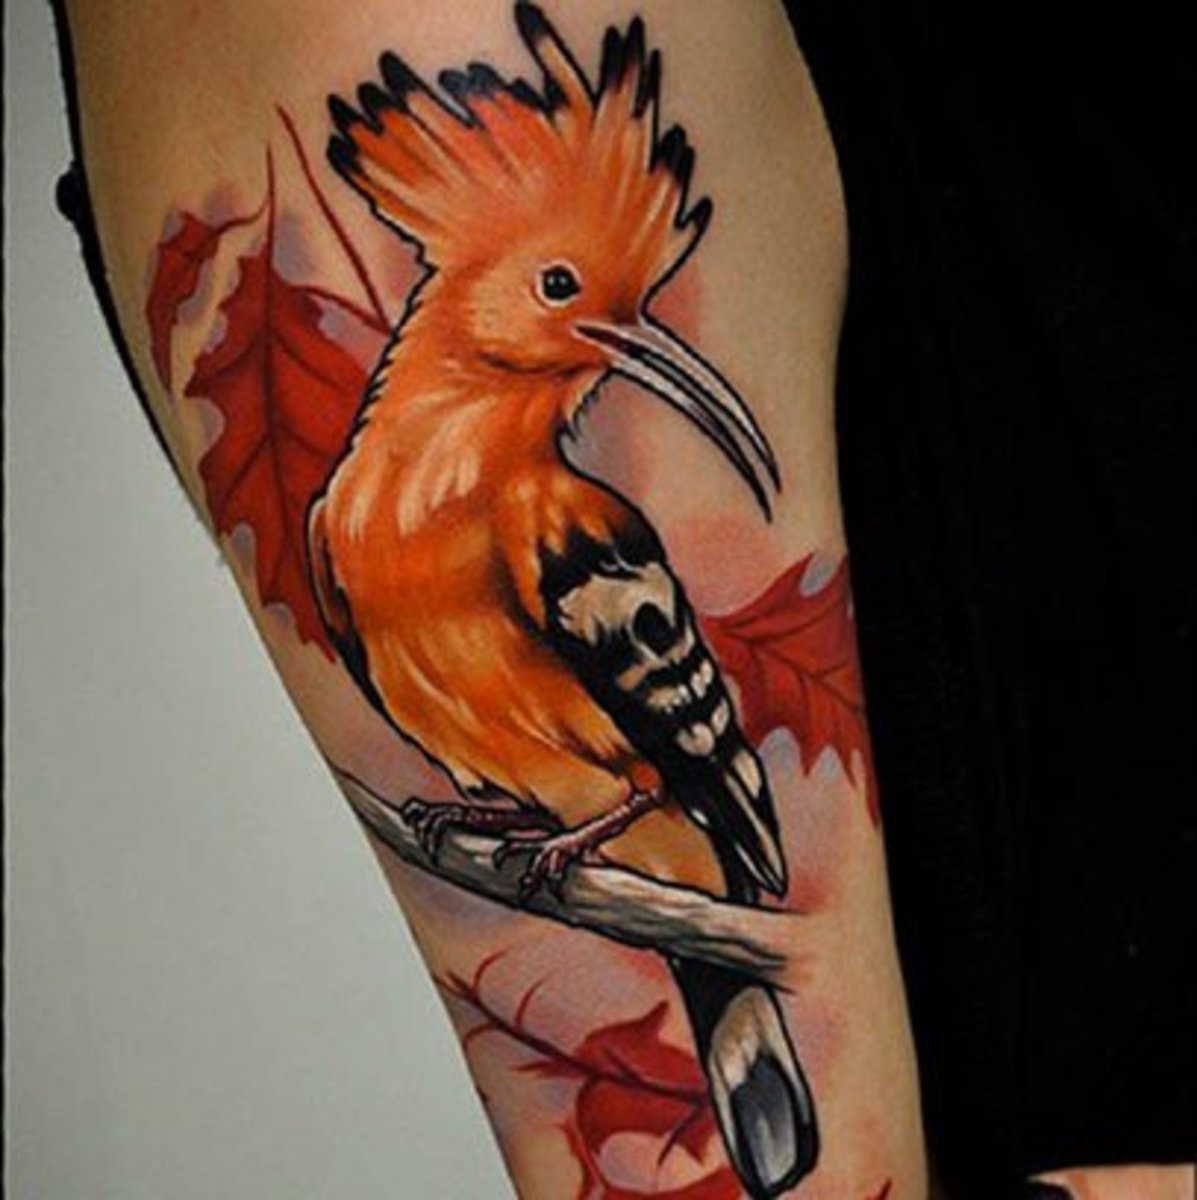 Tattoo Ideas Artists And Models: 11 Tattoos That Will Make You Fall In Love With Autumn